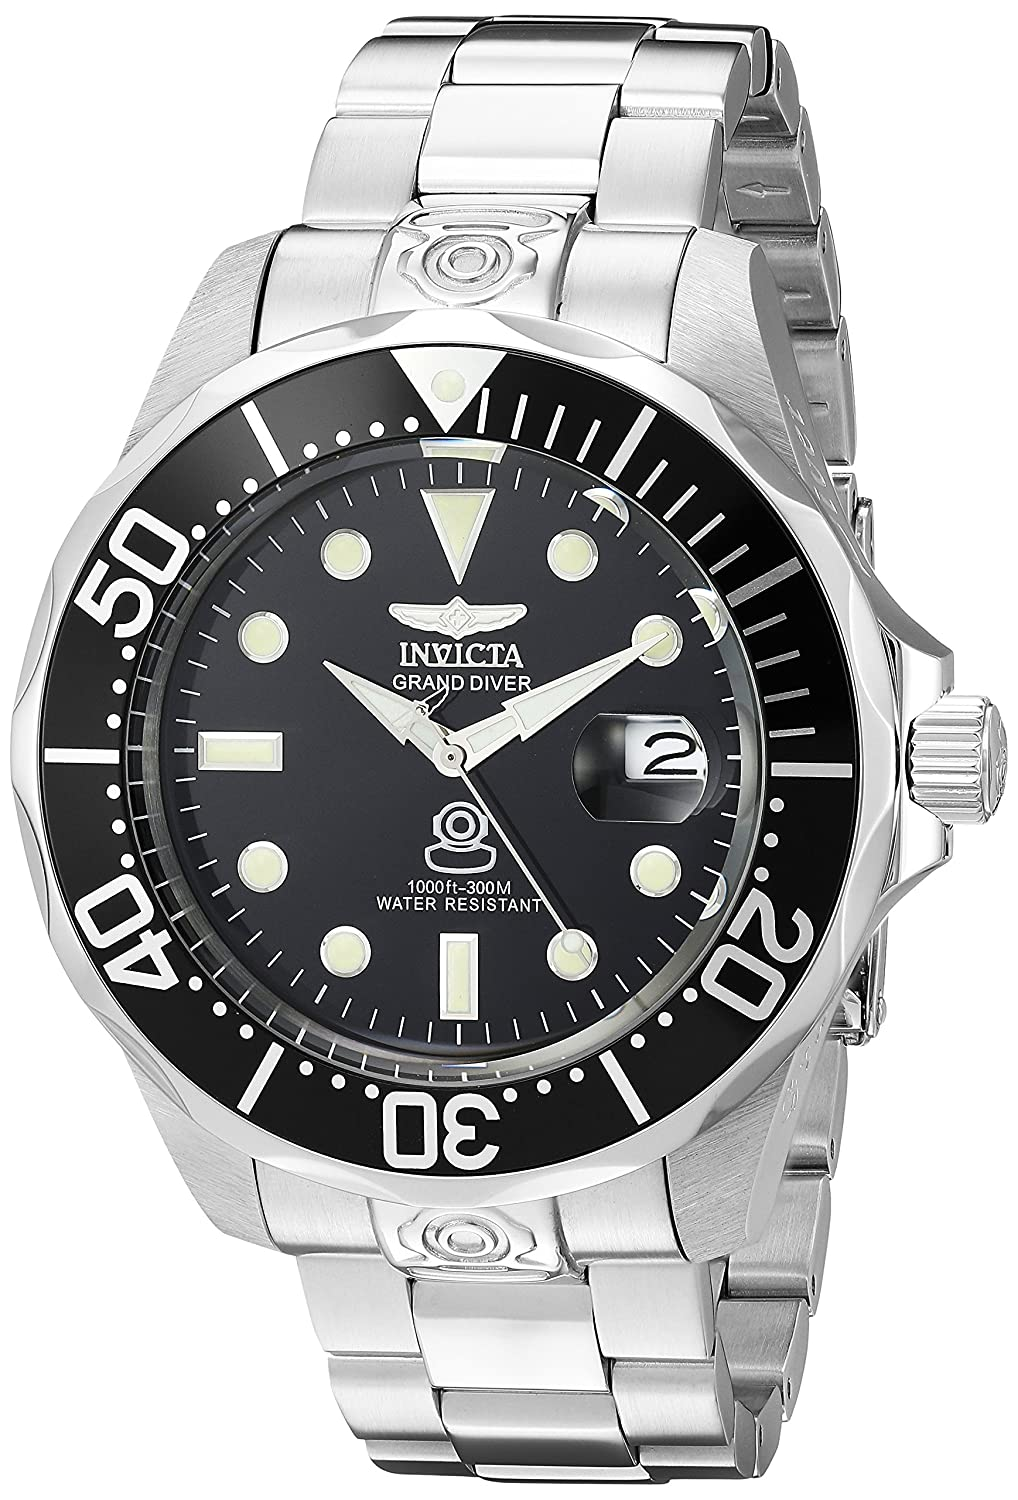 cb021dfe933 Amazon.com  Invicta Men s 3044 Stainless Steel Grand Diver Automatic Watch